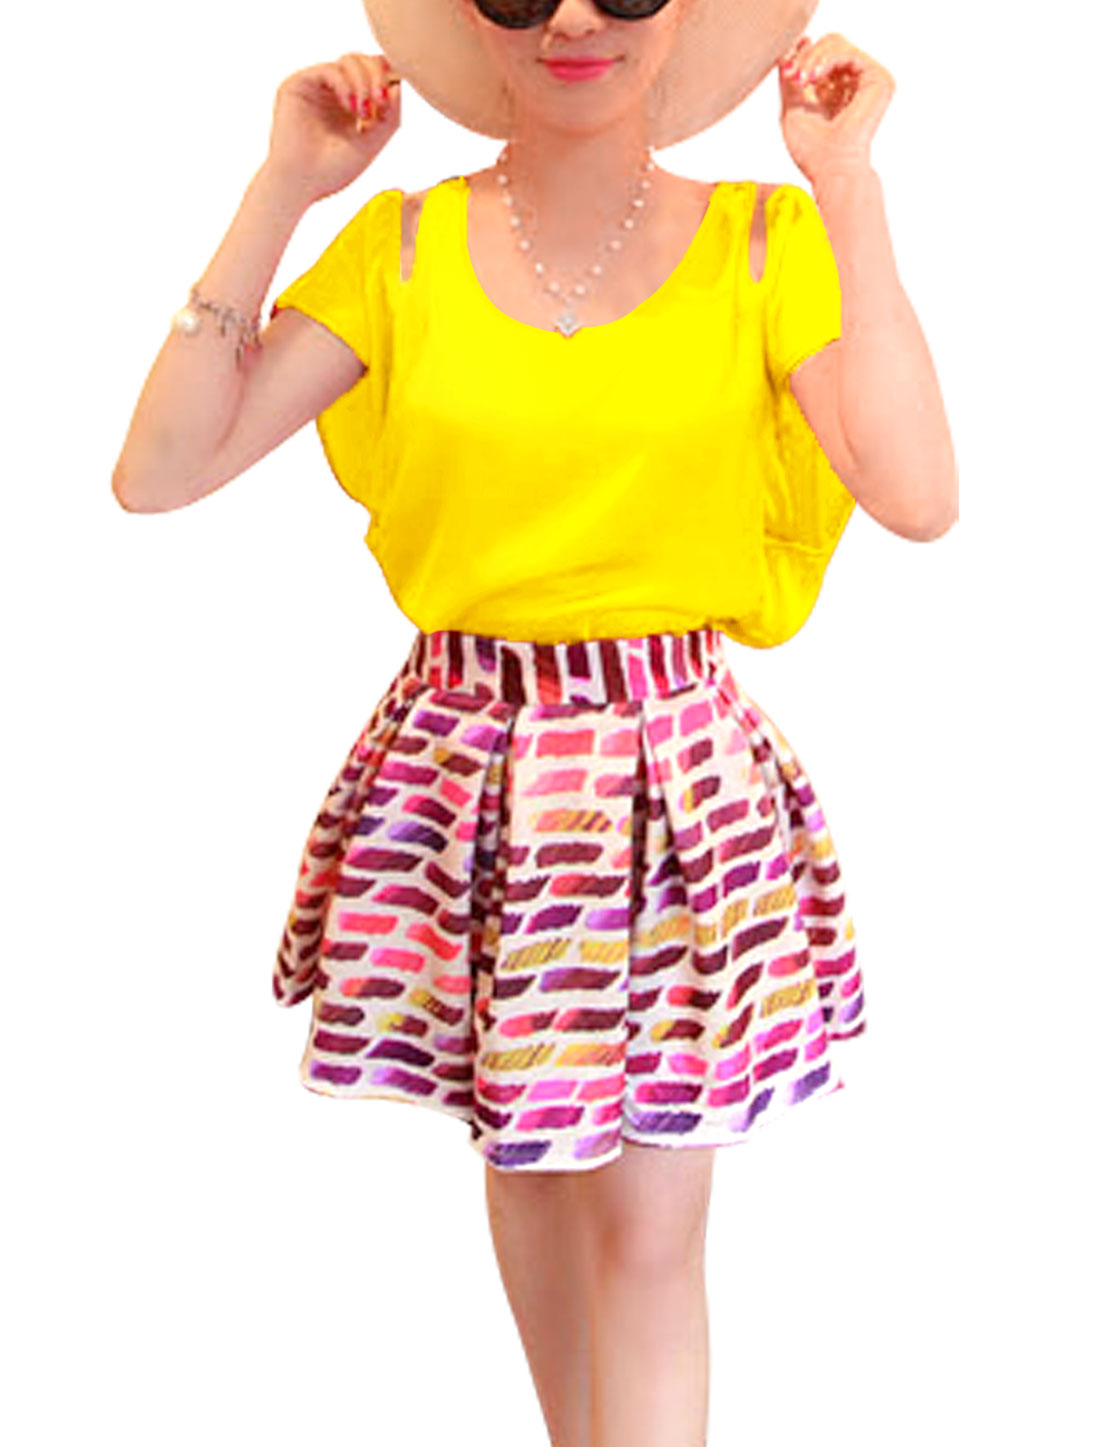 Women Layered Tops Design Round Neck Leisure Top Blouse Yellow S